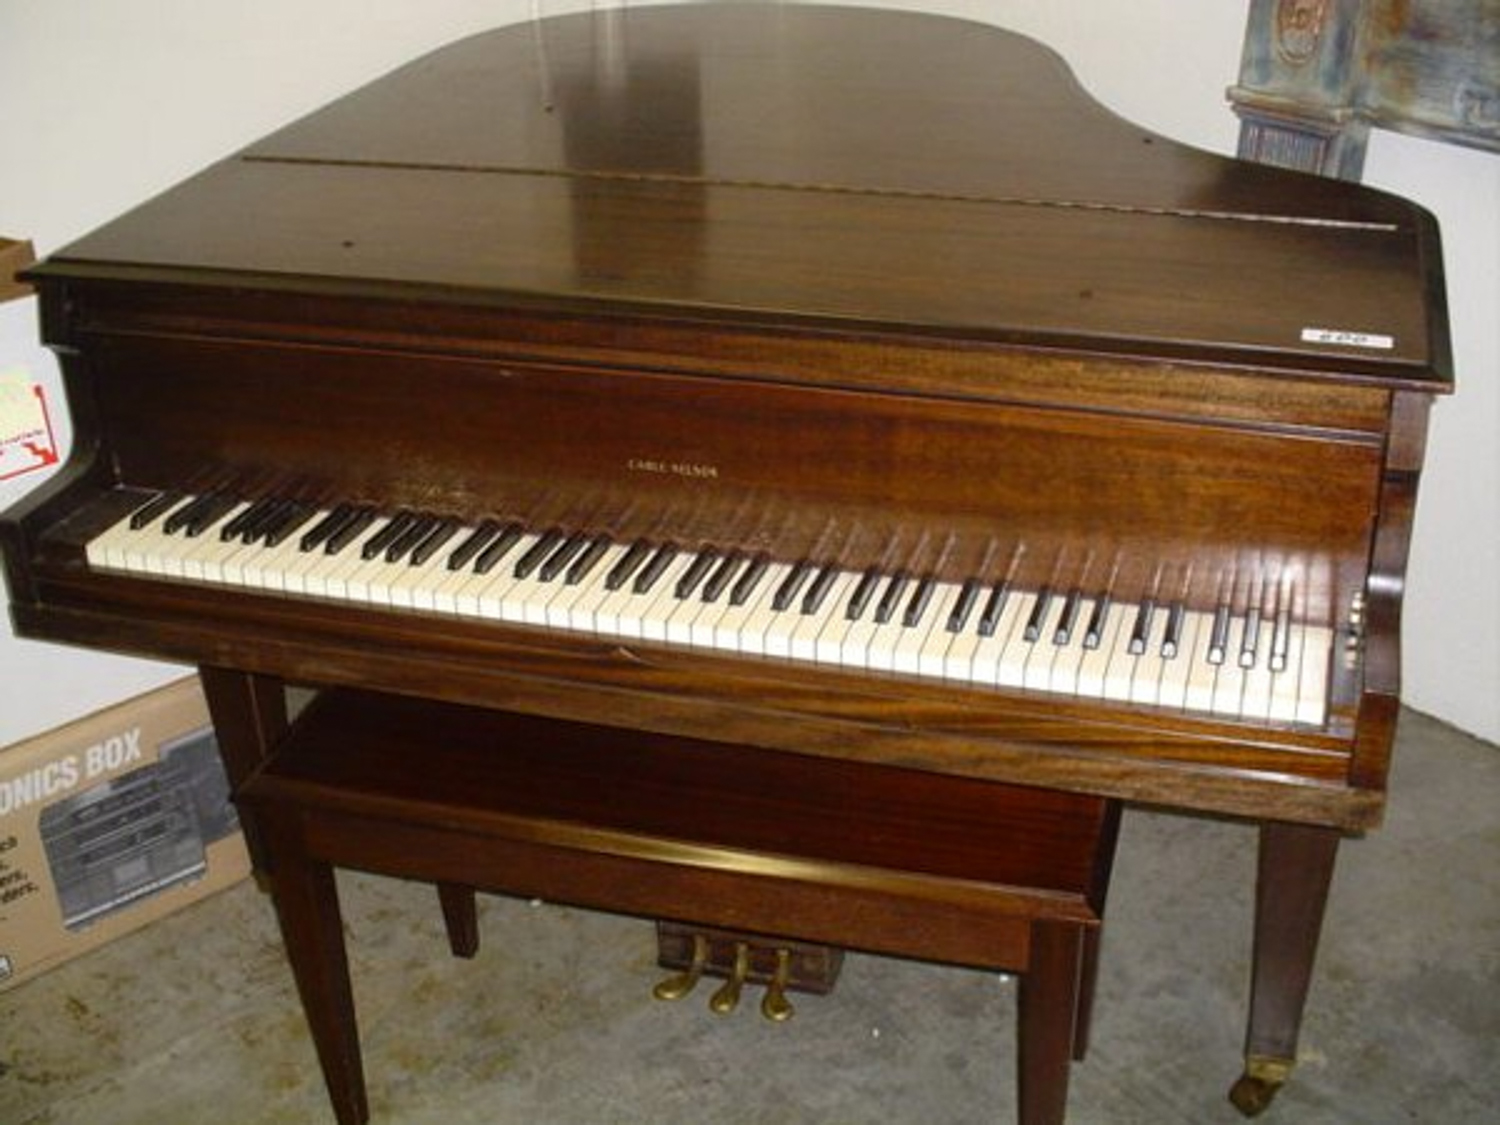 Cable nelson baby grand piano size 39 x 54 x 58 99 x Size of baby grand piano